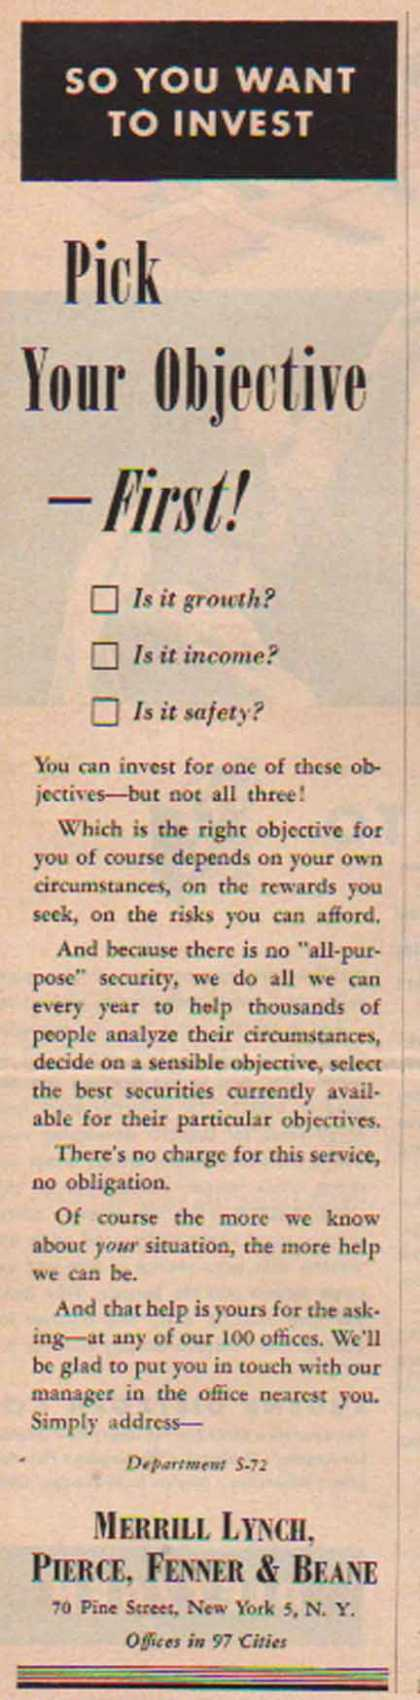 Merrill Lynch – Pick Your Objective First – Sold (1951)